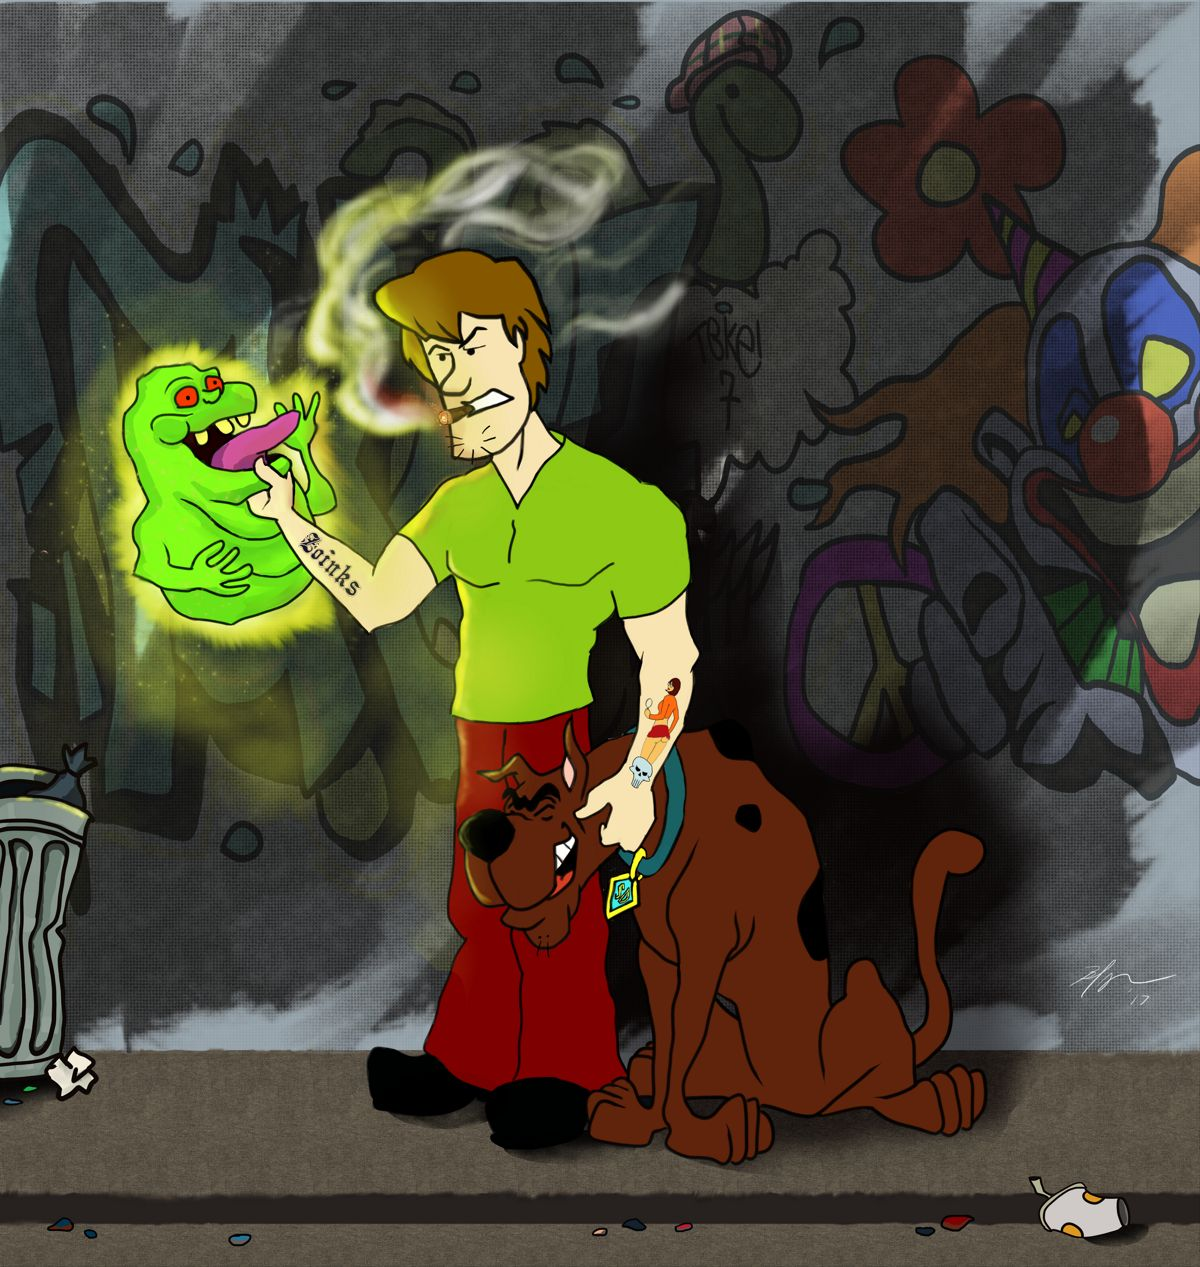 Shaggy ain't afraid of no ghost